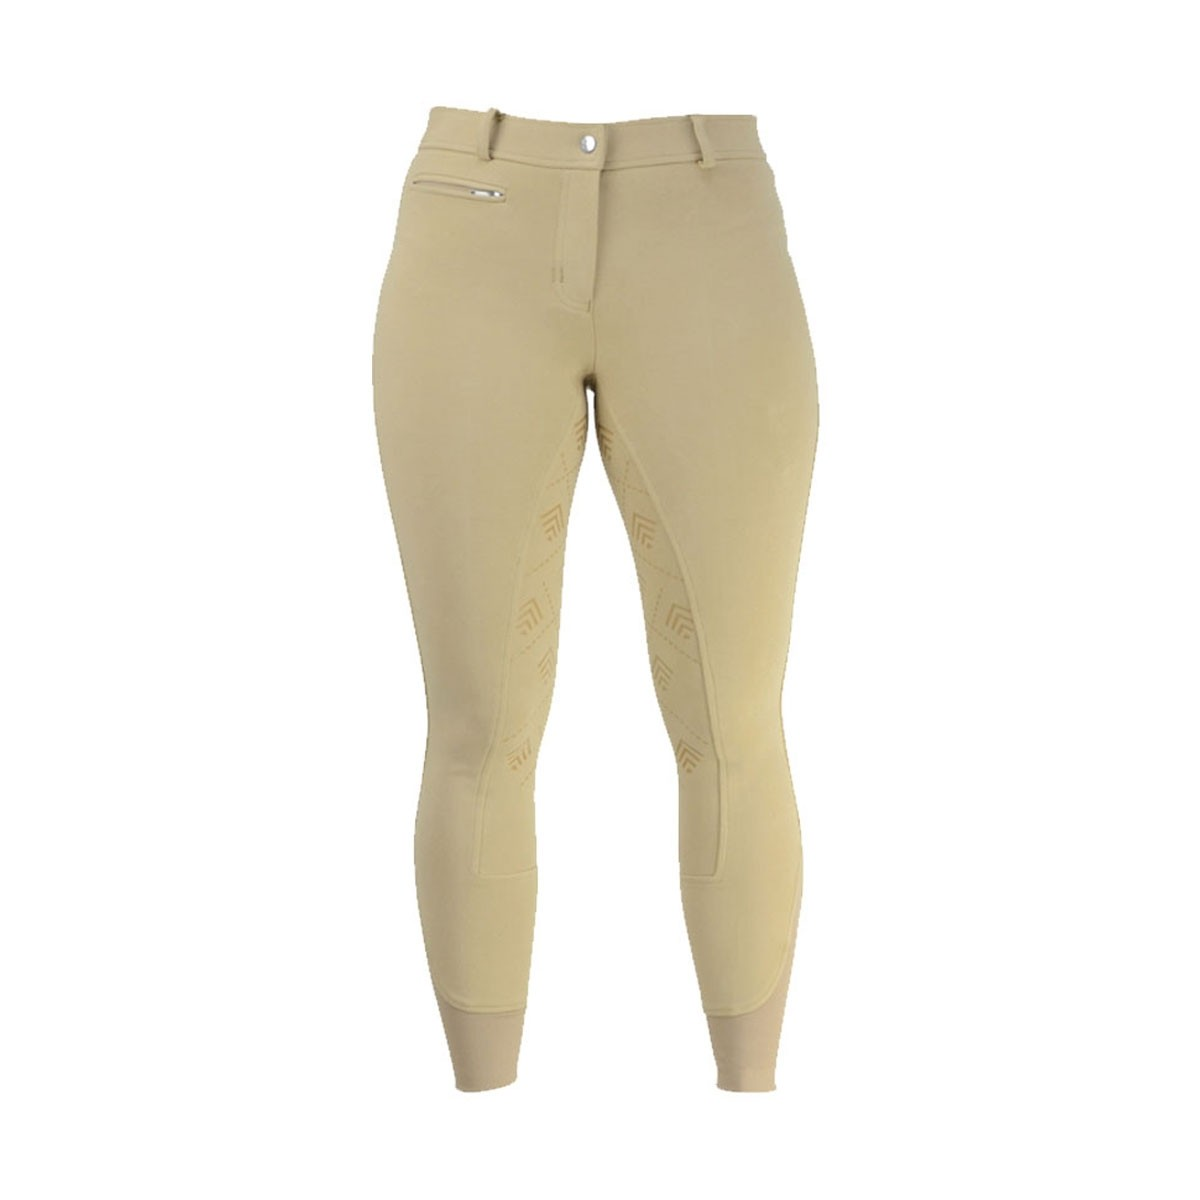 HyPERFORMANCE Derby Silicon Ladies Jodhpurs  - Thomas Irving's equestrian and accessories store  HyPERFORMANCE Derby Silicon Ladies Jodhpurs